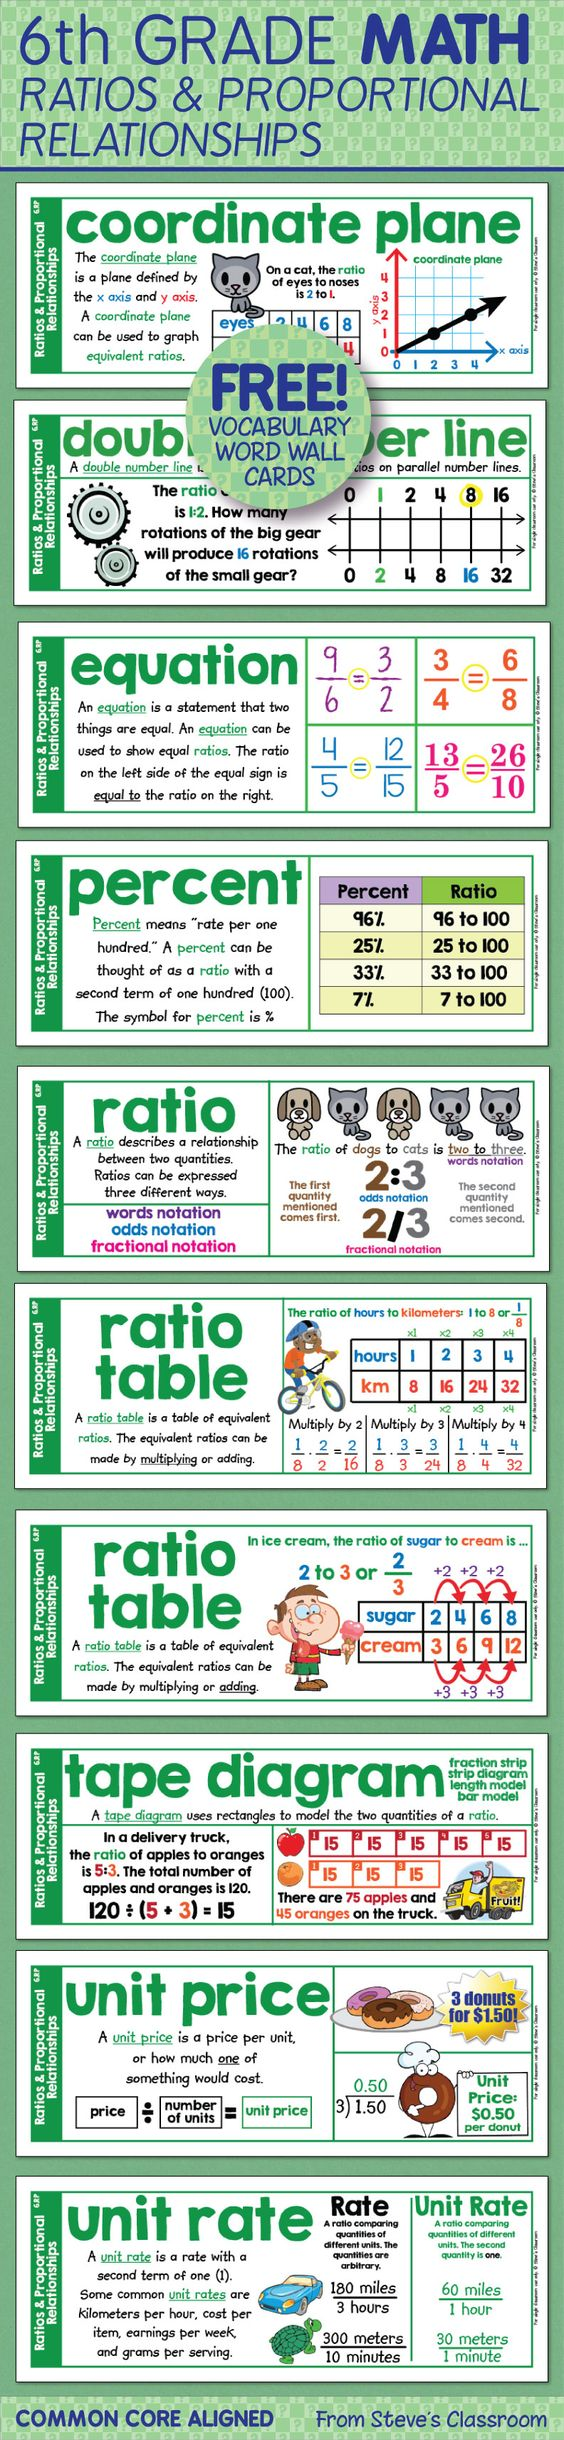 Free! Word wall cards for sixth grade math ratios and ...